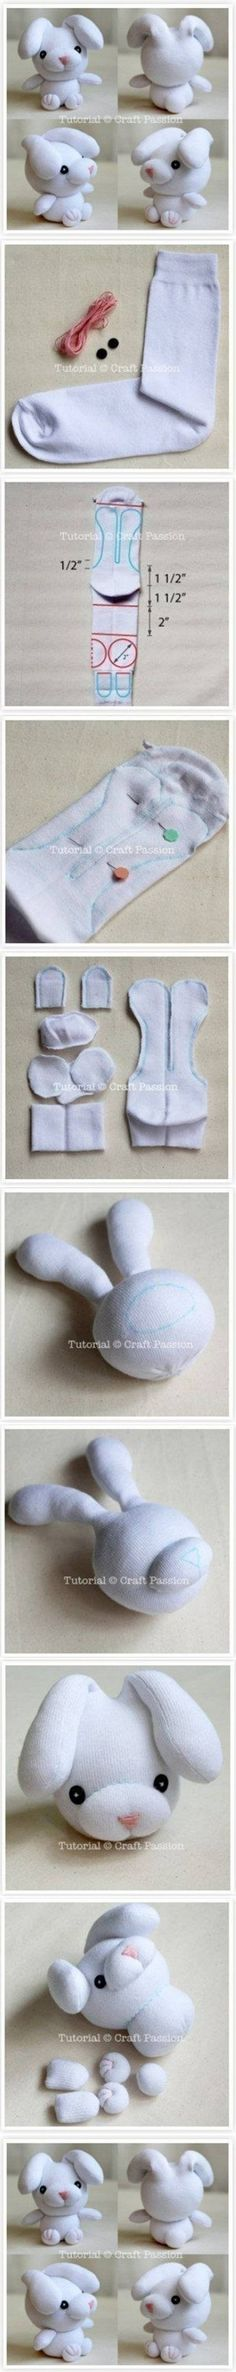 How to make Sew Sock Bunny step by step DIY tutorial instructions 400x4022 How to make Sew Sock Bunny step by step DIY tutorial instructions...